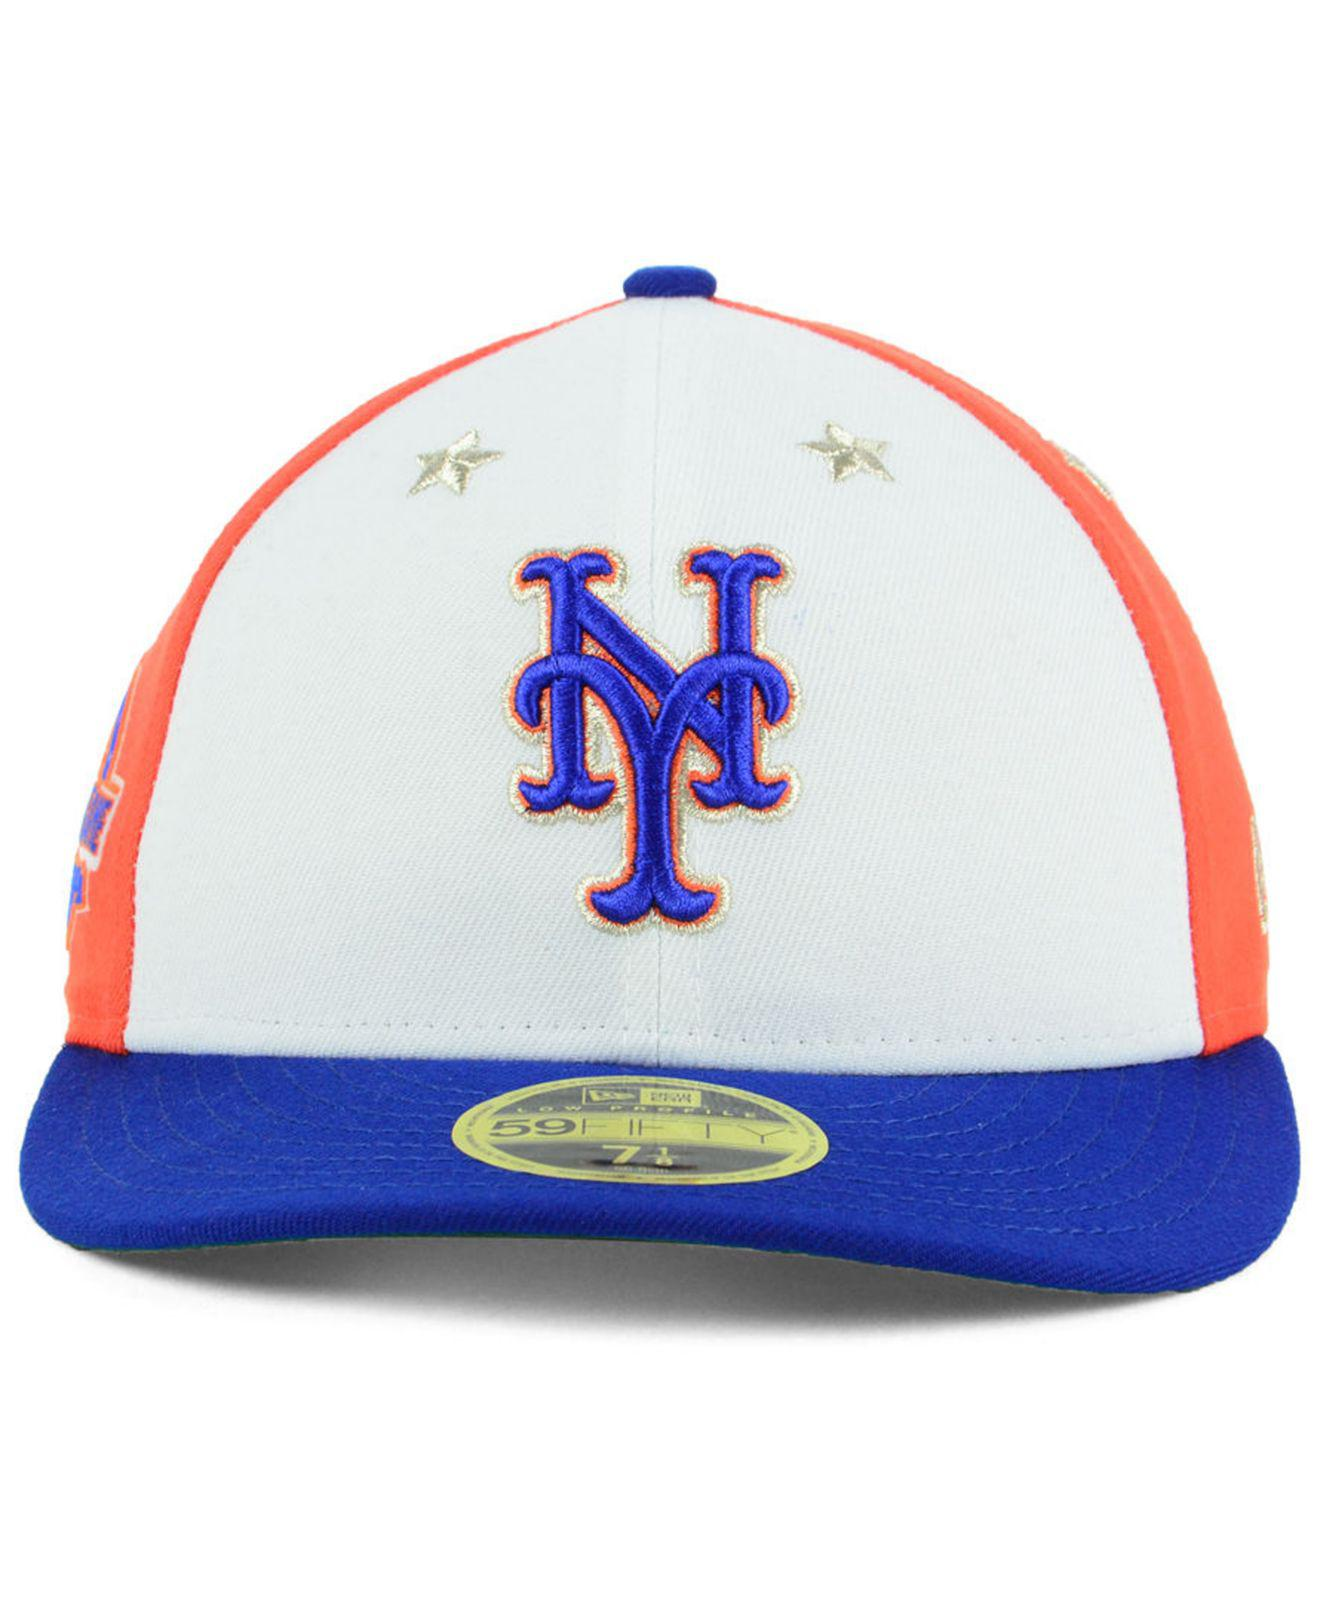 Lyst - KTZ New York Mets All Star Game Patch Low Profile 59fifty ... 8ed94d98b1cc